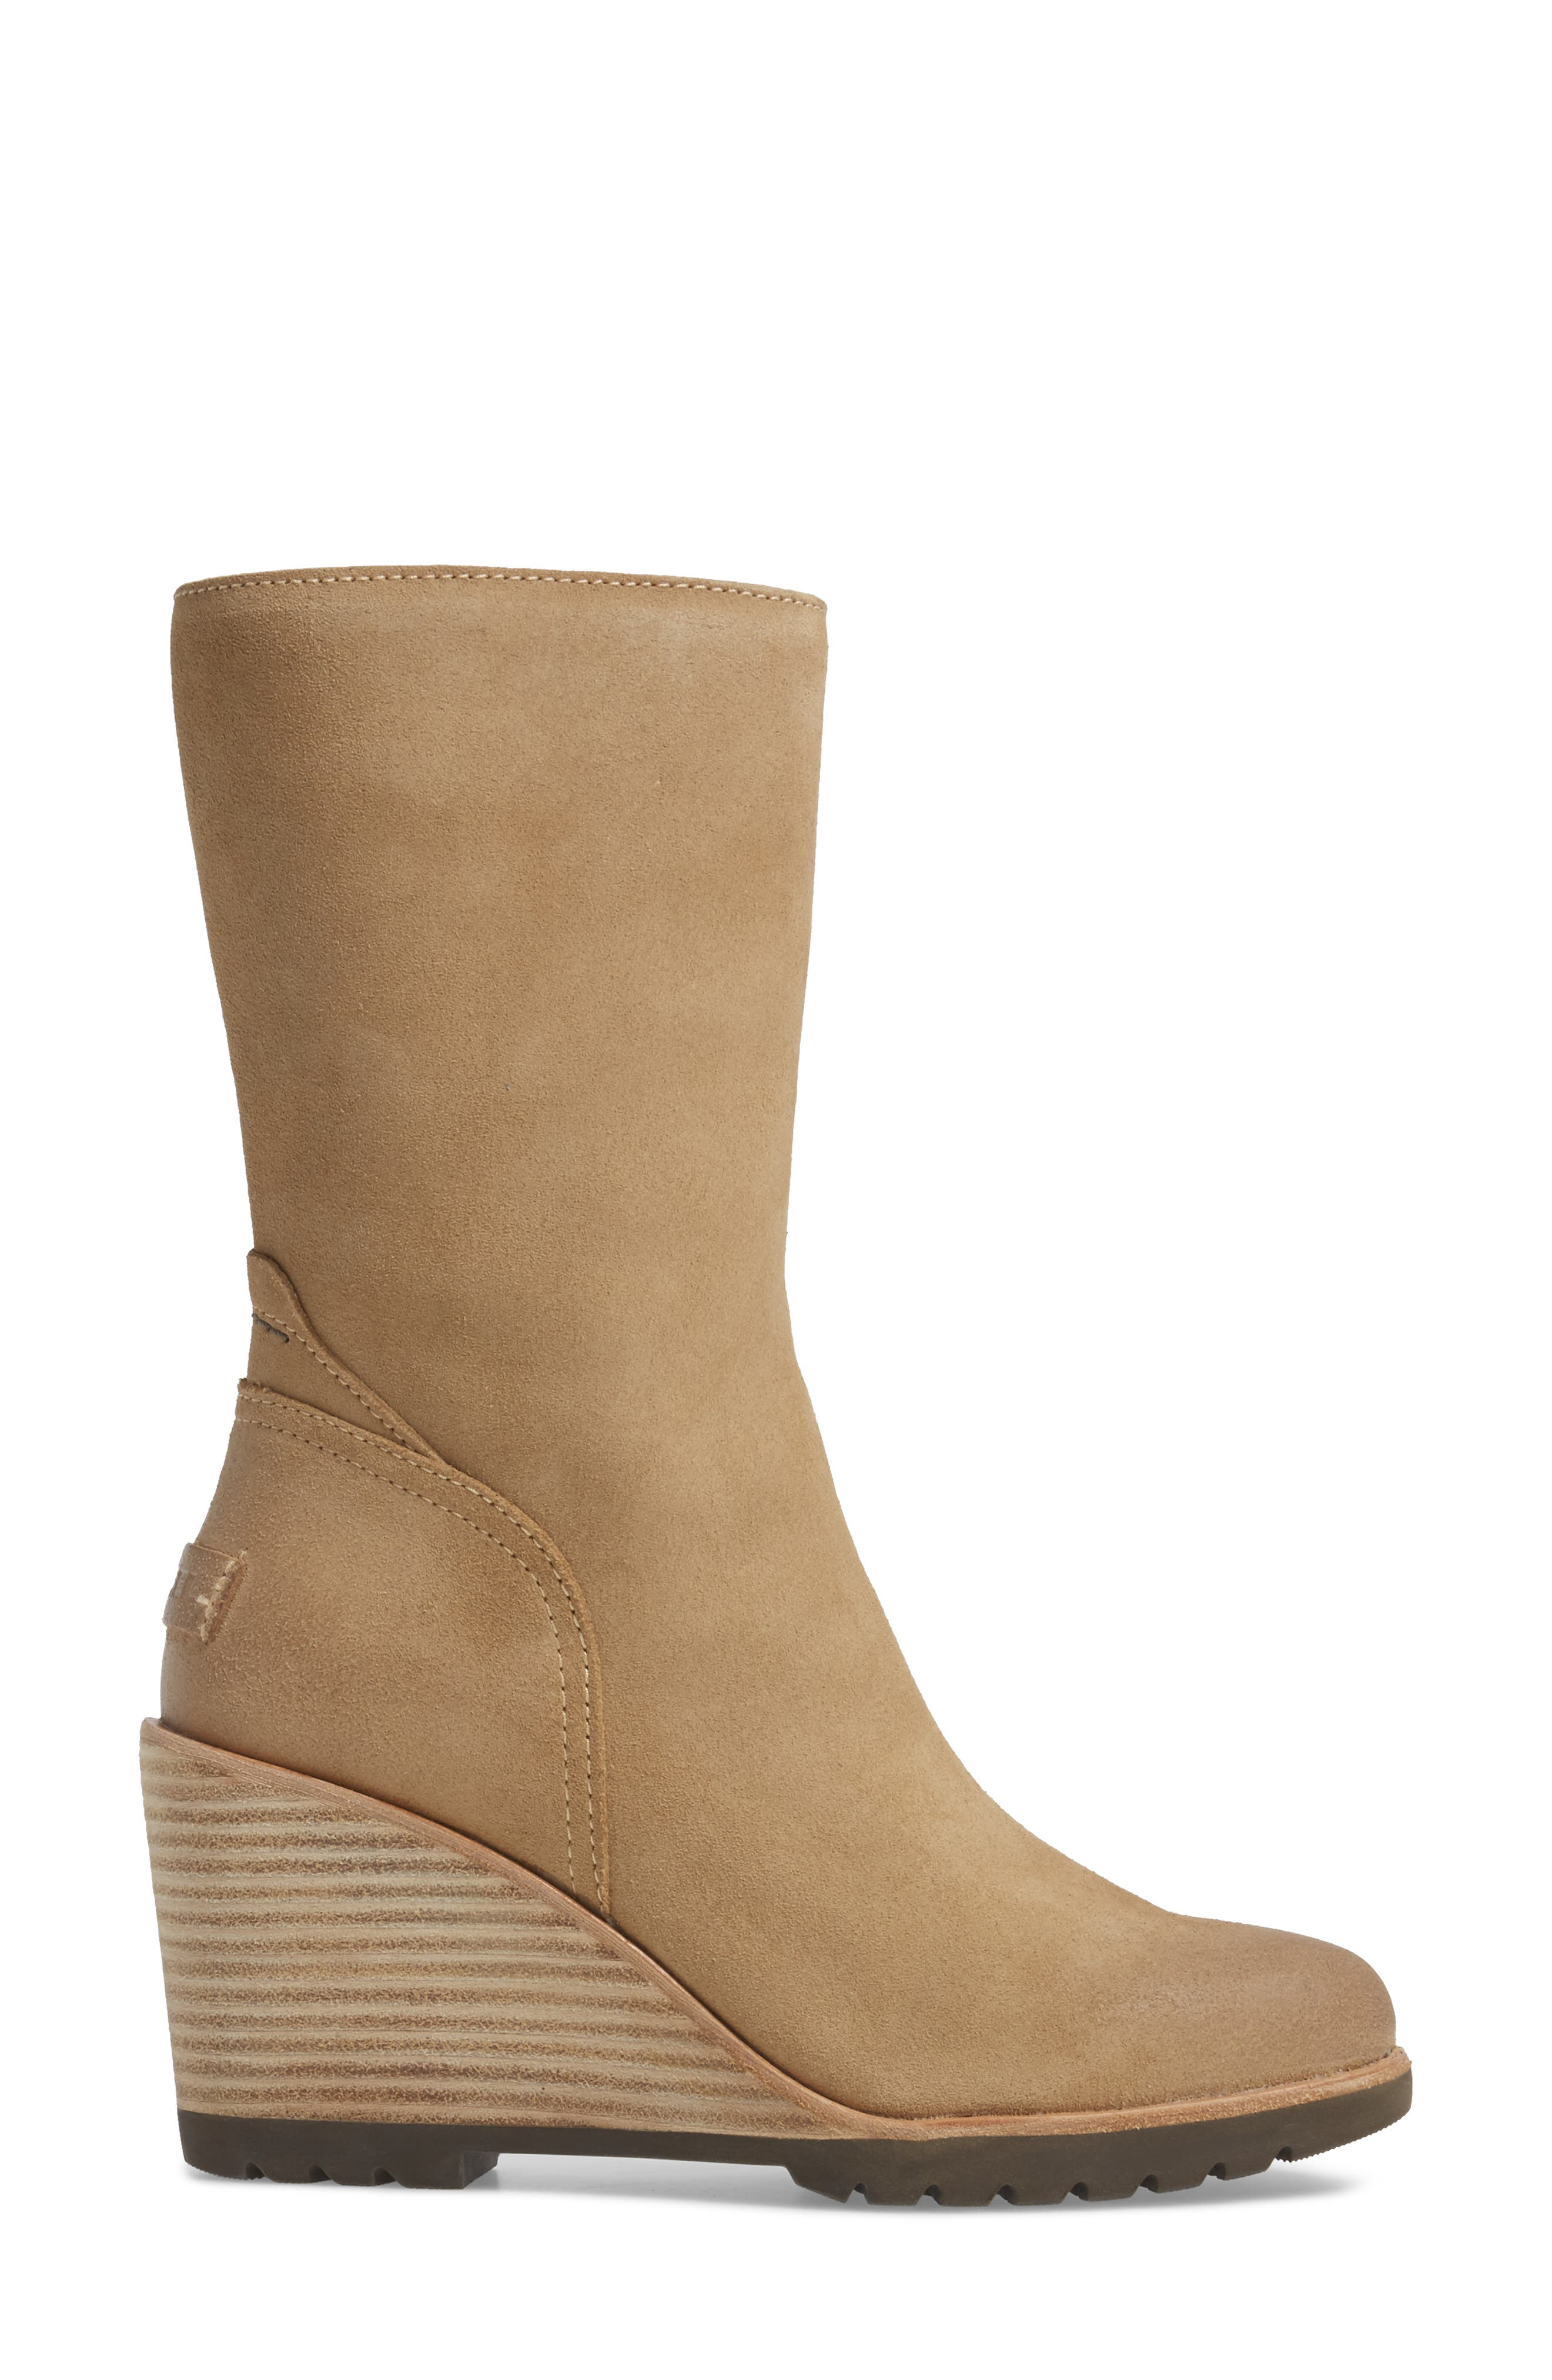 After Hours Waterproof Bootie,                             Alternate thumbnail 6, color,